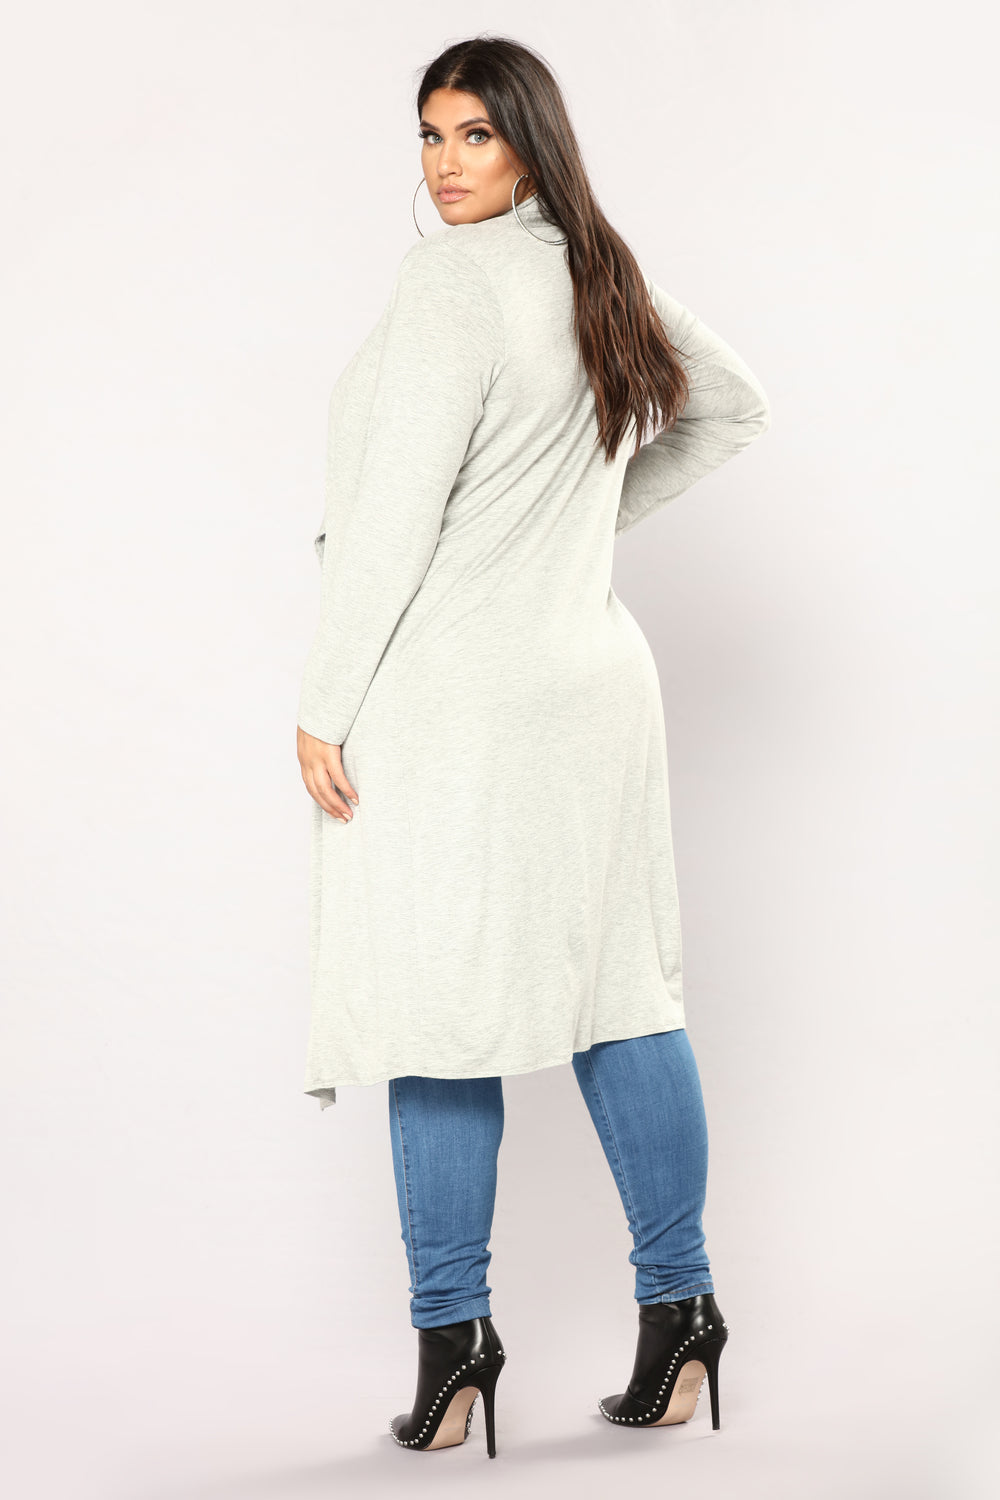 Stay Around Draped Cardigan - Heather Grey